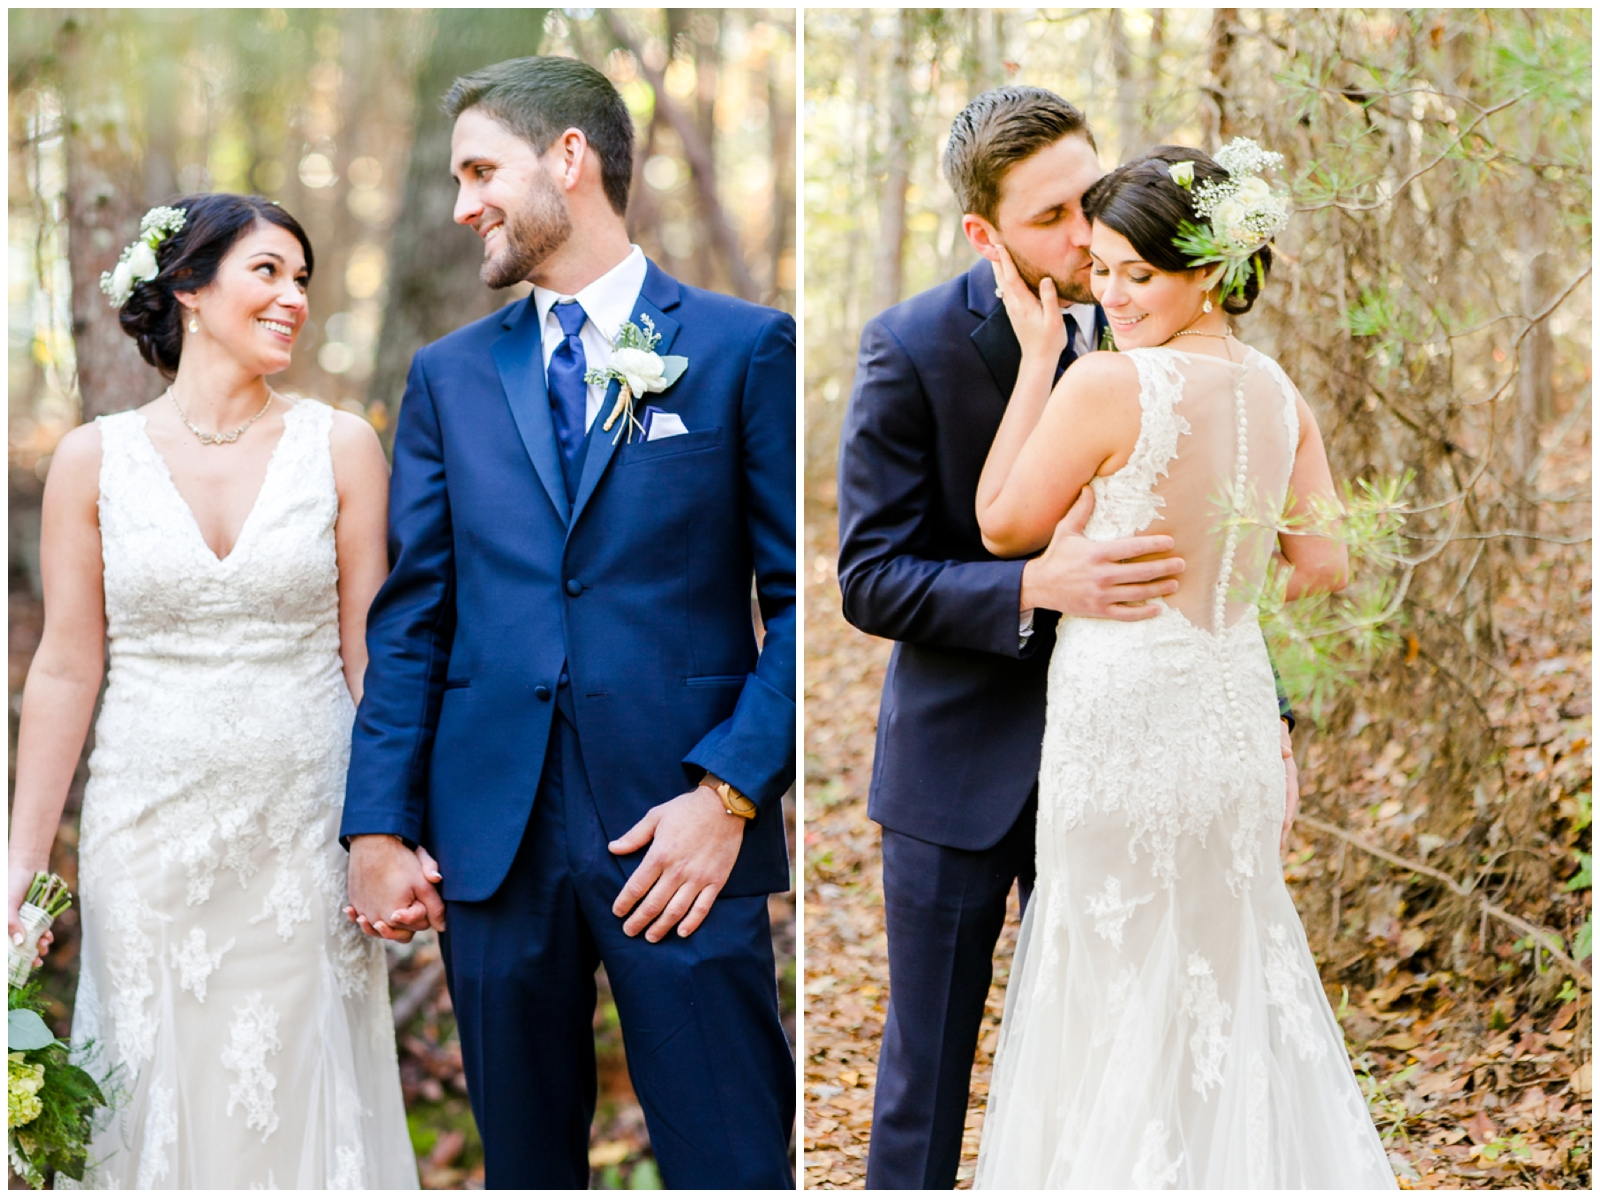 R&G_AtlantaWeddingPhotographer_WhiteOaksBarn_0014